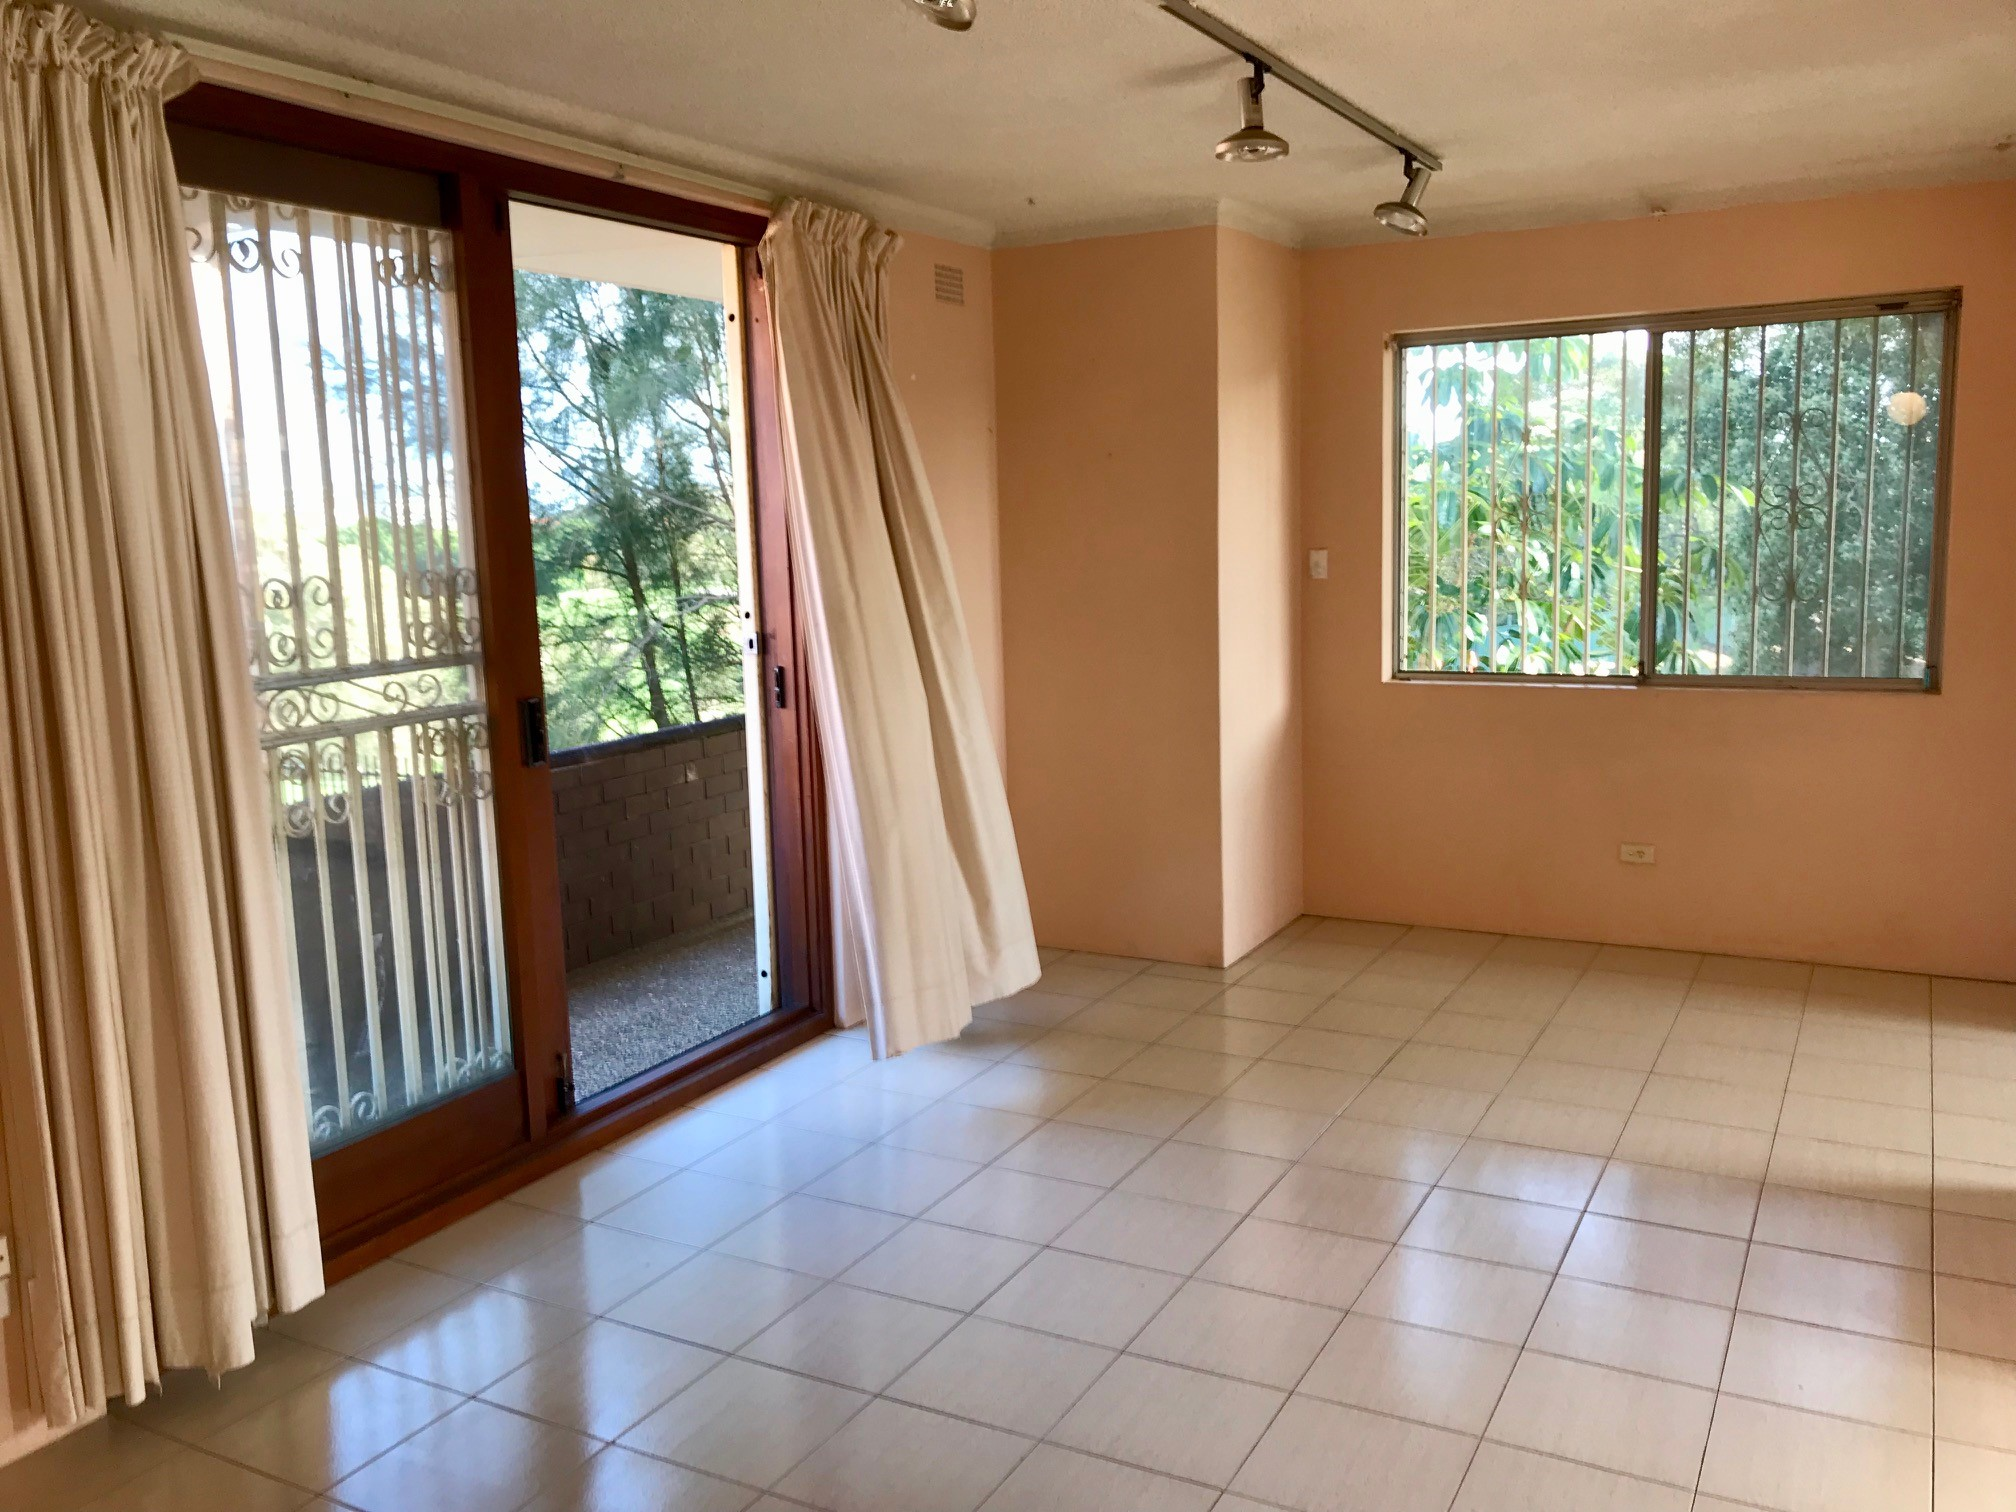 5 11 salisbury road kensington nsw 2033 apartment for rent $550